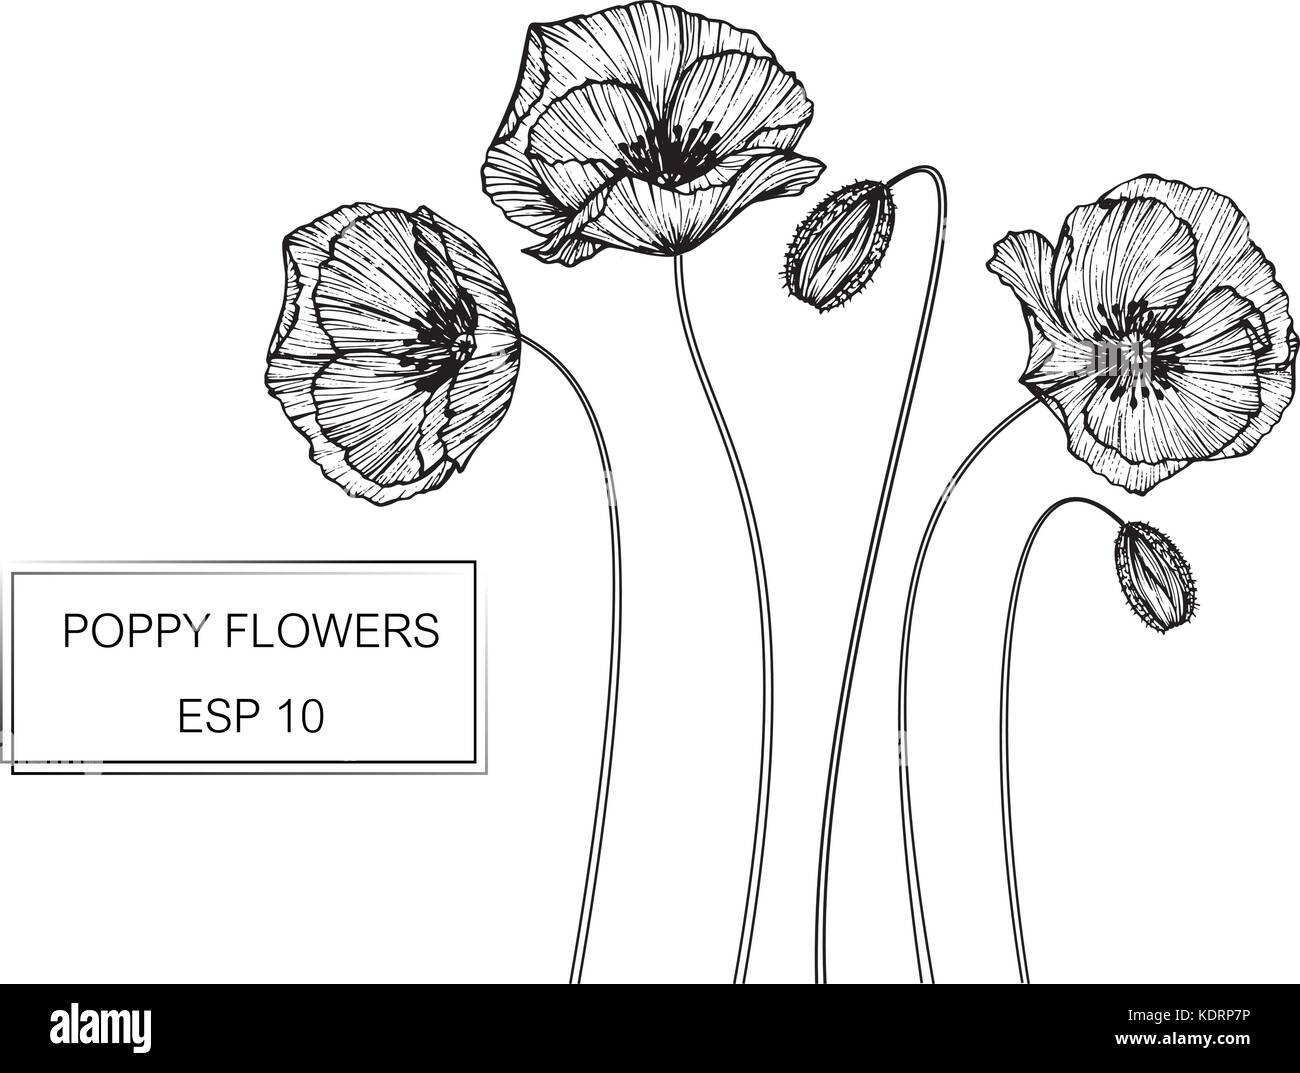 Poppy flower drawing illustration black and white with line art poppy flower drawing illustration black and white with line art mightylinksfo